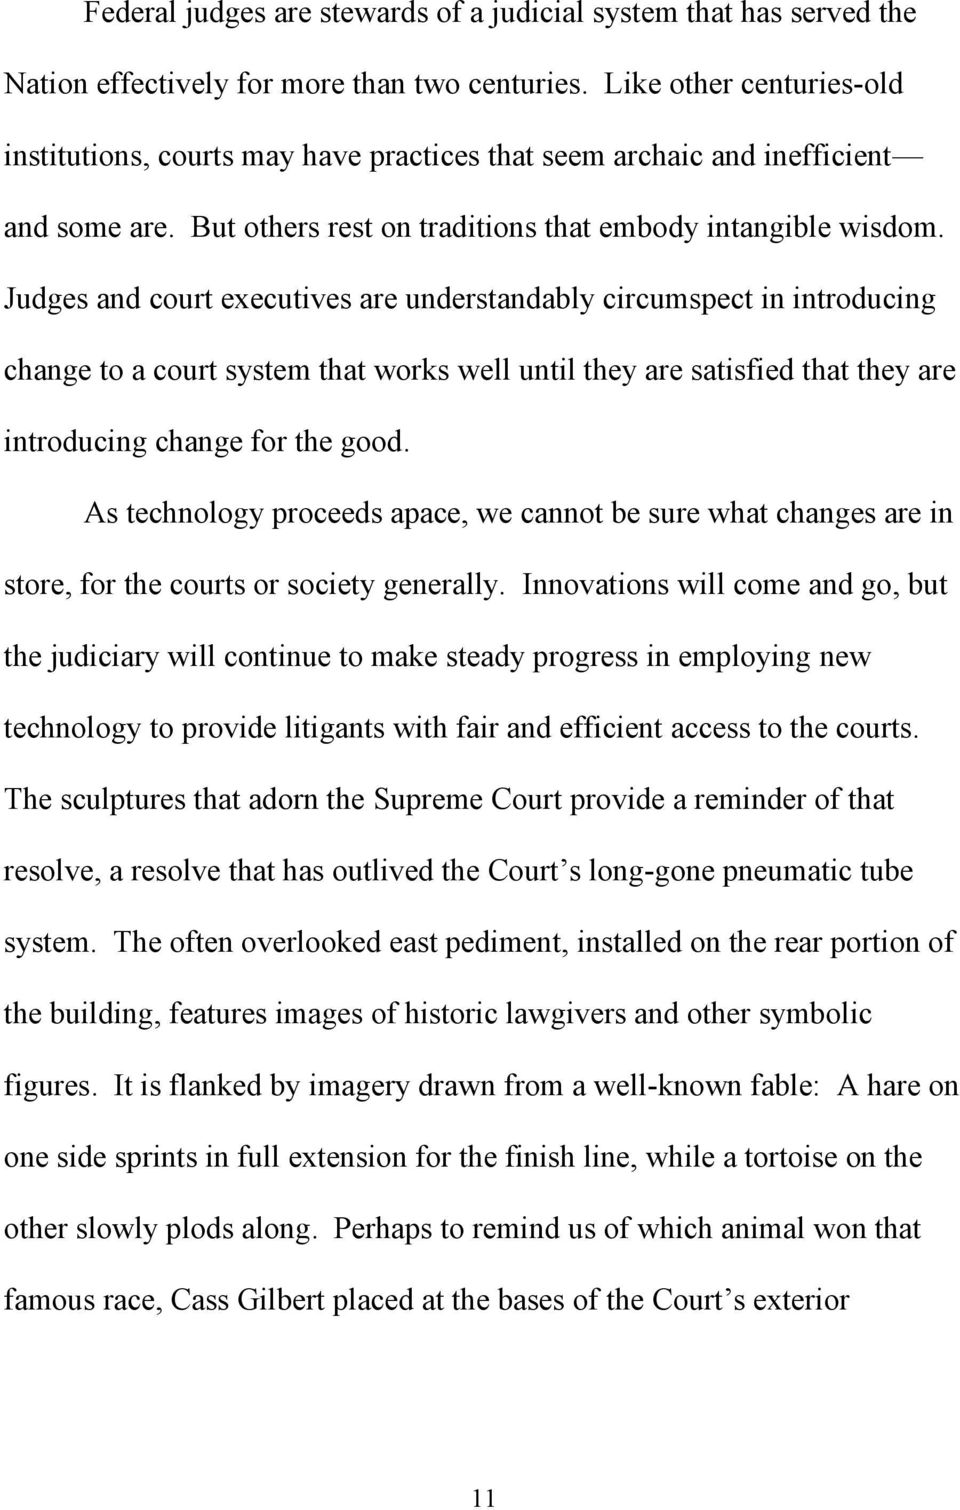 Judges and court executives are understandably circumspect in introducing change to a court system that works well until they are satisfied that they are introducing change for the good.